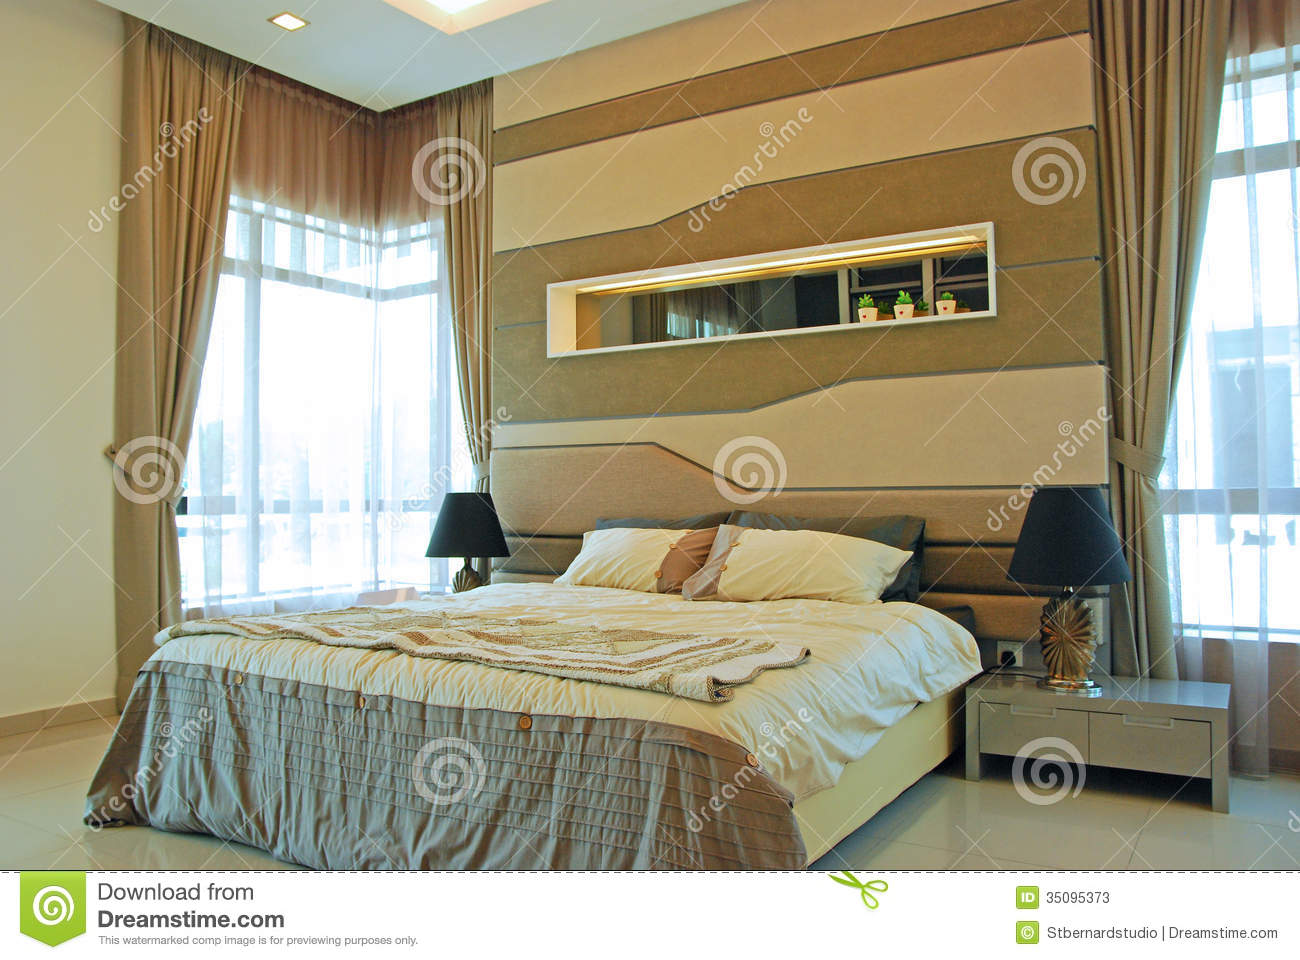 Interior design of master bedroom stock image image for Master bedroom interior design images